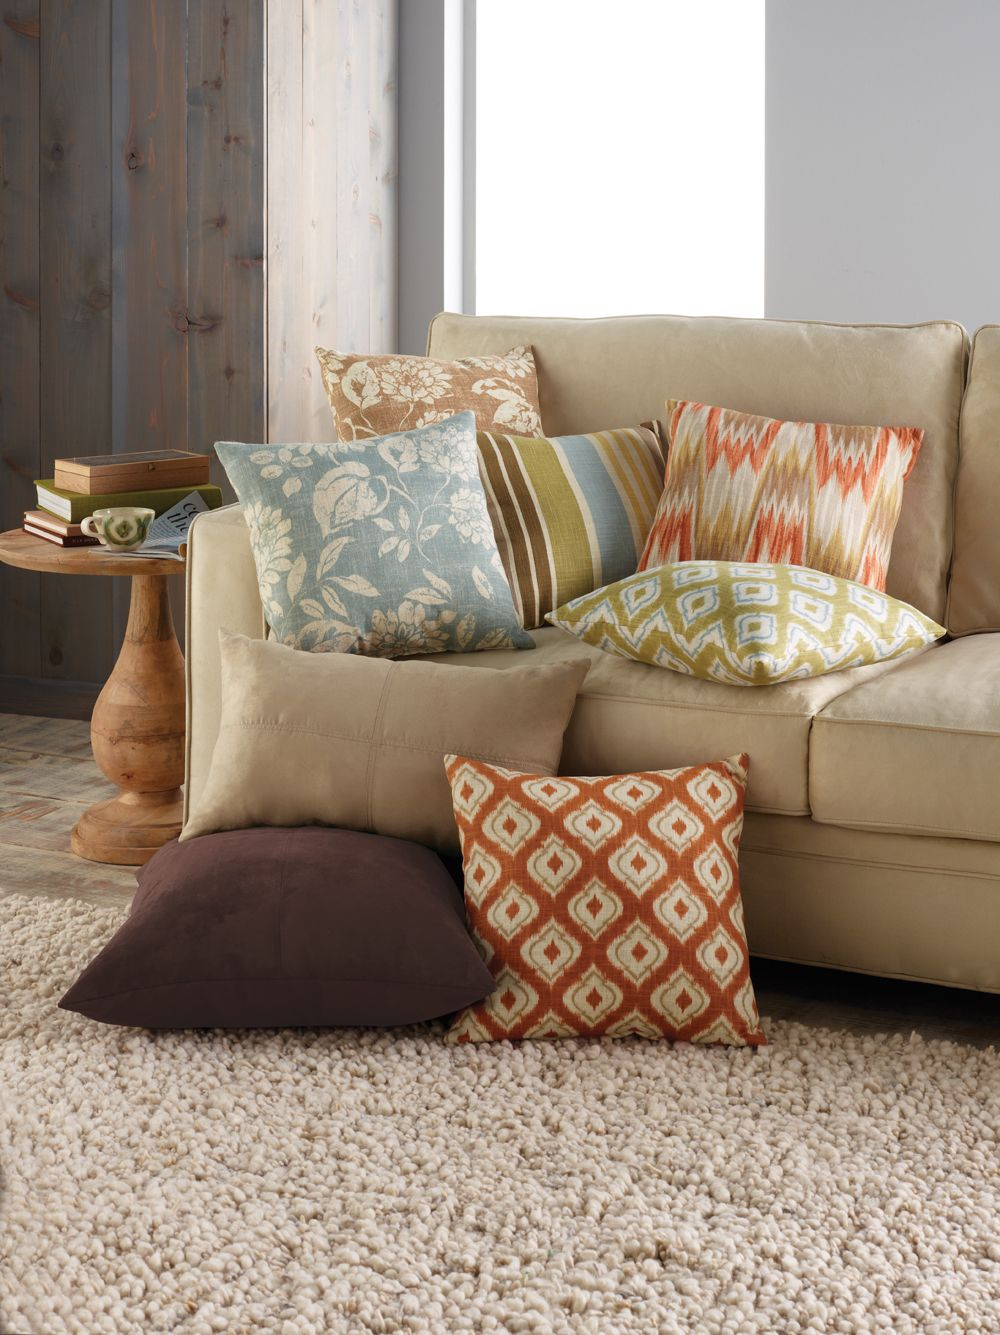 Kohls Decorative Pillows Stunning Throw Pillows Galore#homedecor #kohls  Home Style  Pinterest Inspiration